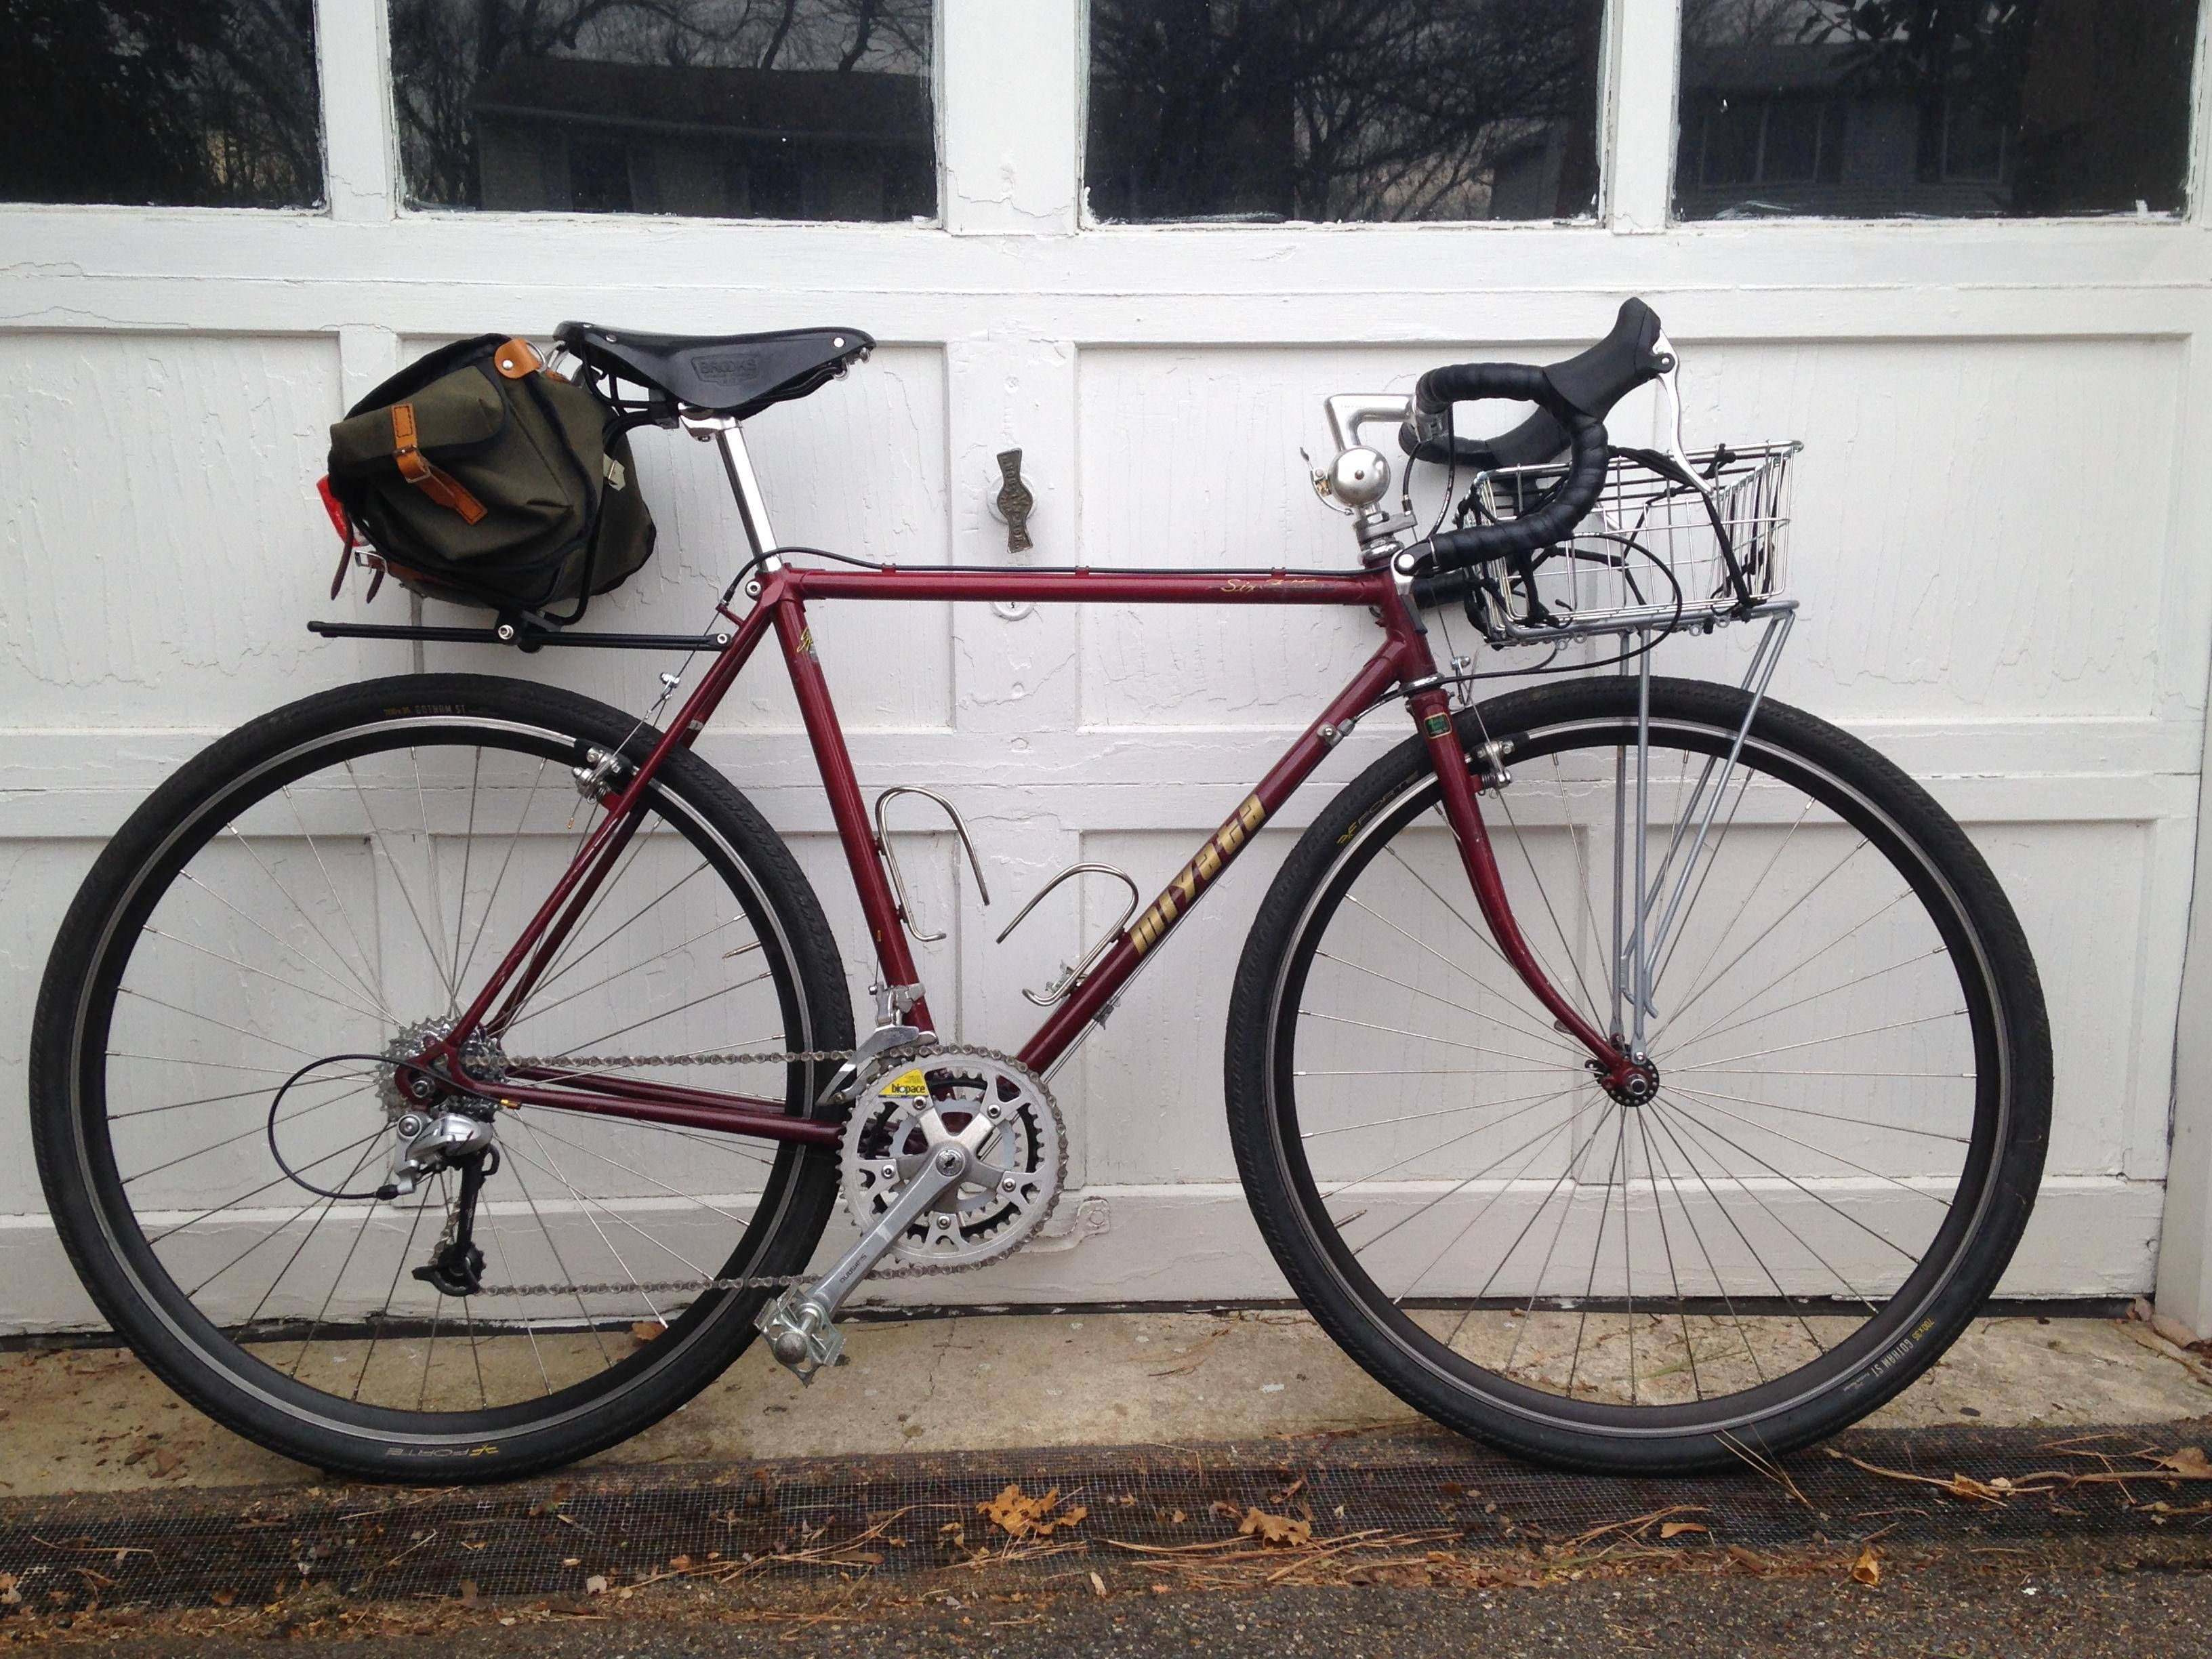 Show Us Your Gravel Grinder Page 13 Bike Forums Vintage Mountain Bike Commuter Bike Cyclocross